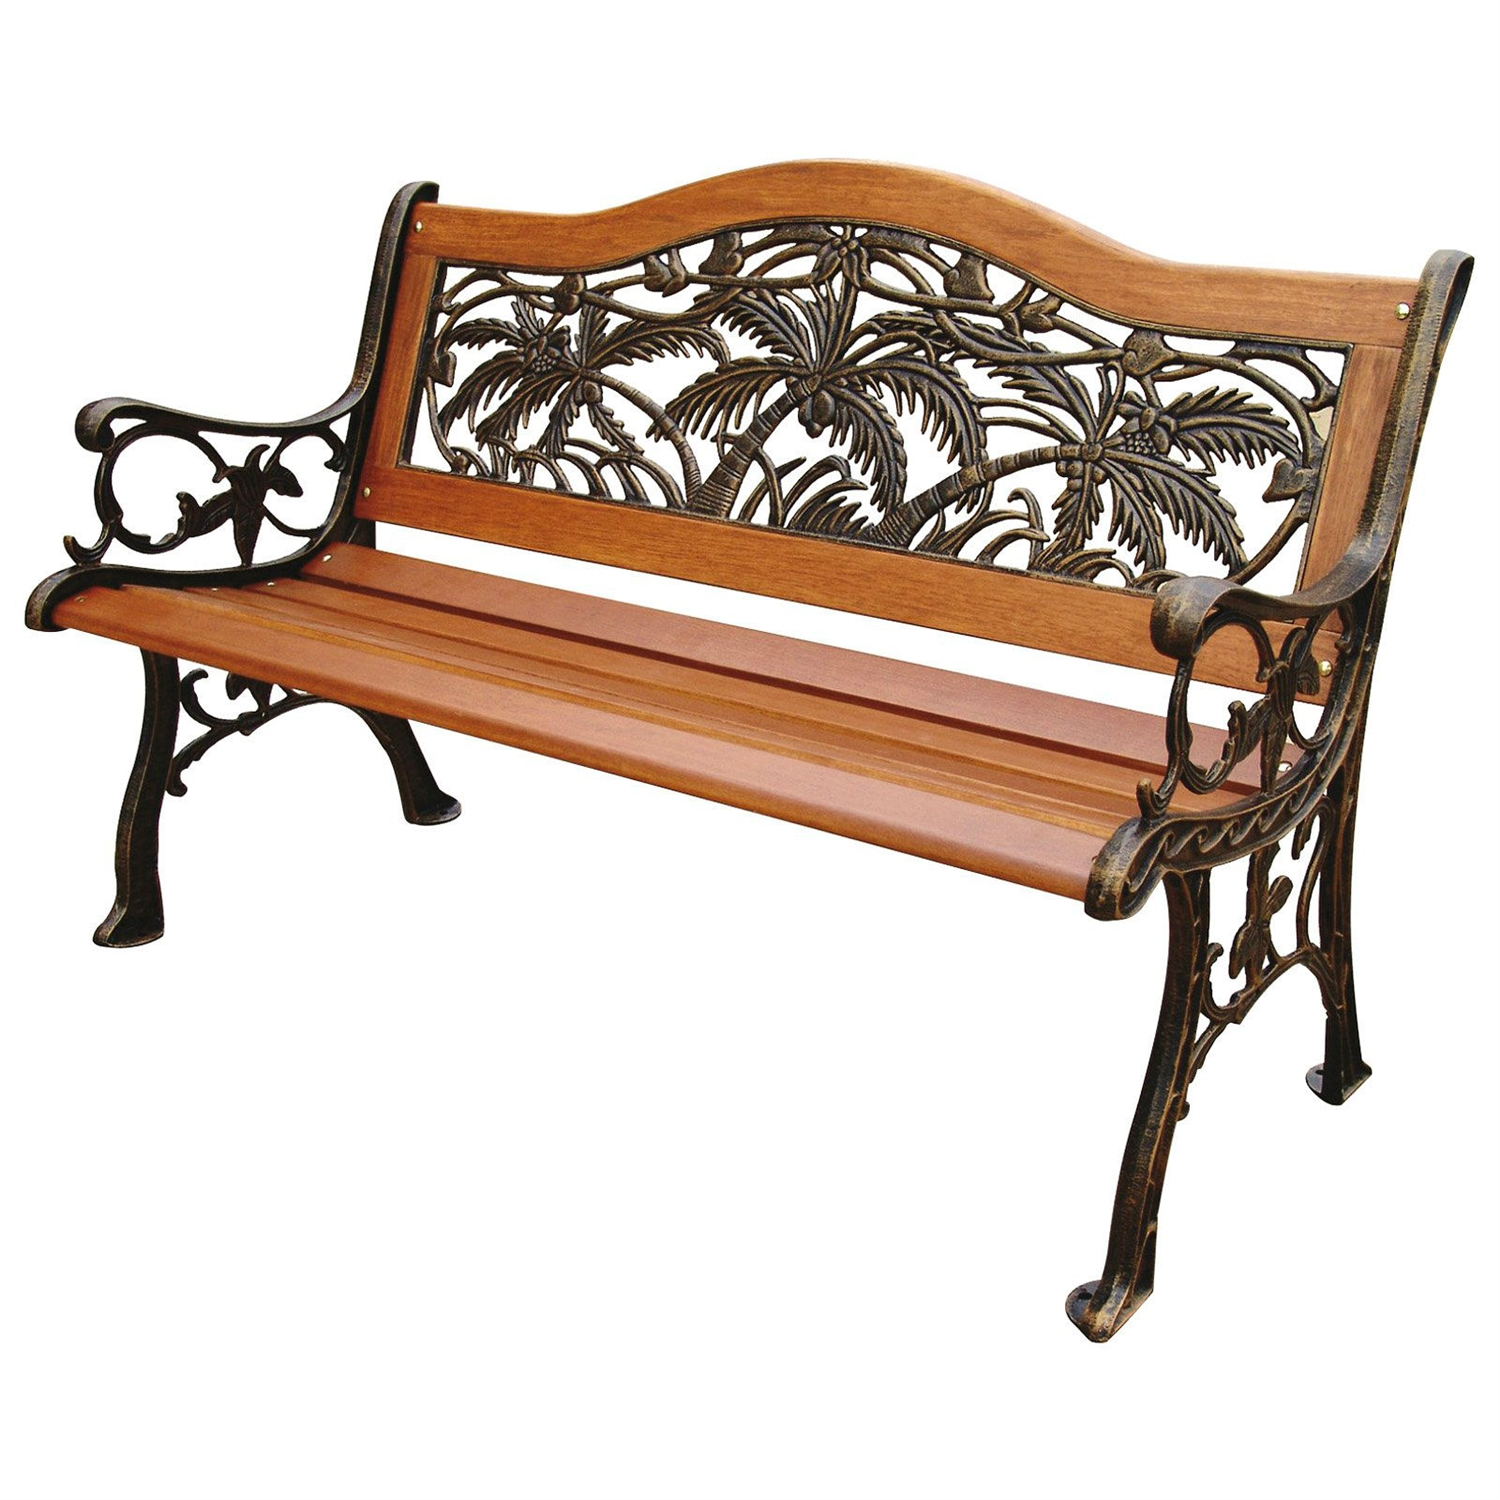 Classic Outdoor 4 Ft Wood Metal Garden Bench With Bronze Palm Tree Design